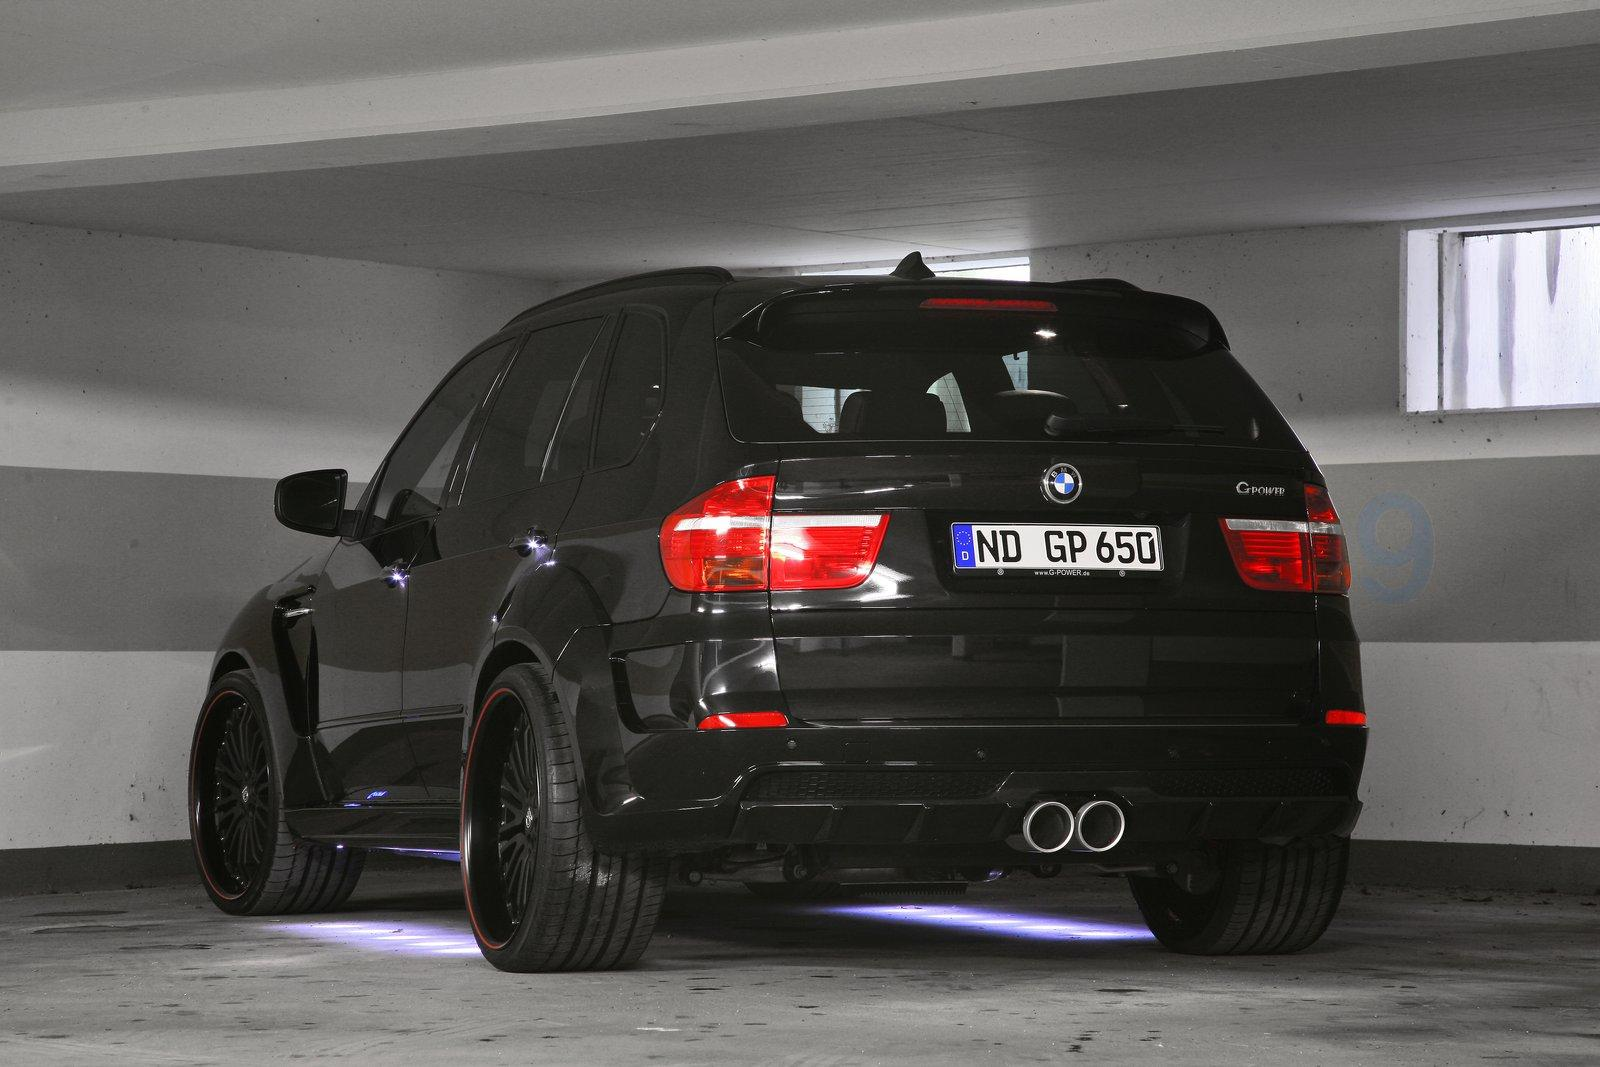 Bmw x5 wide tires